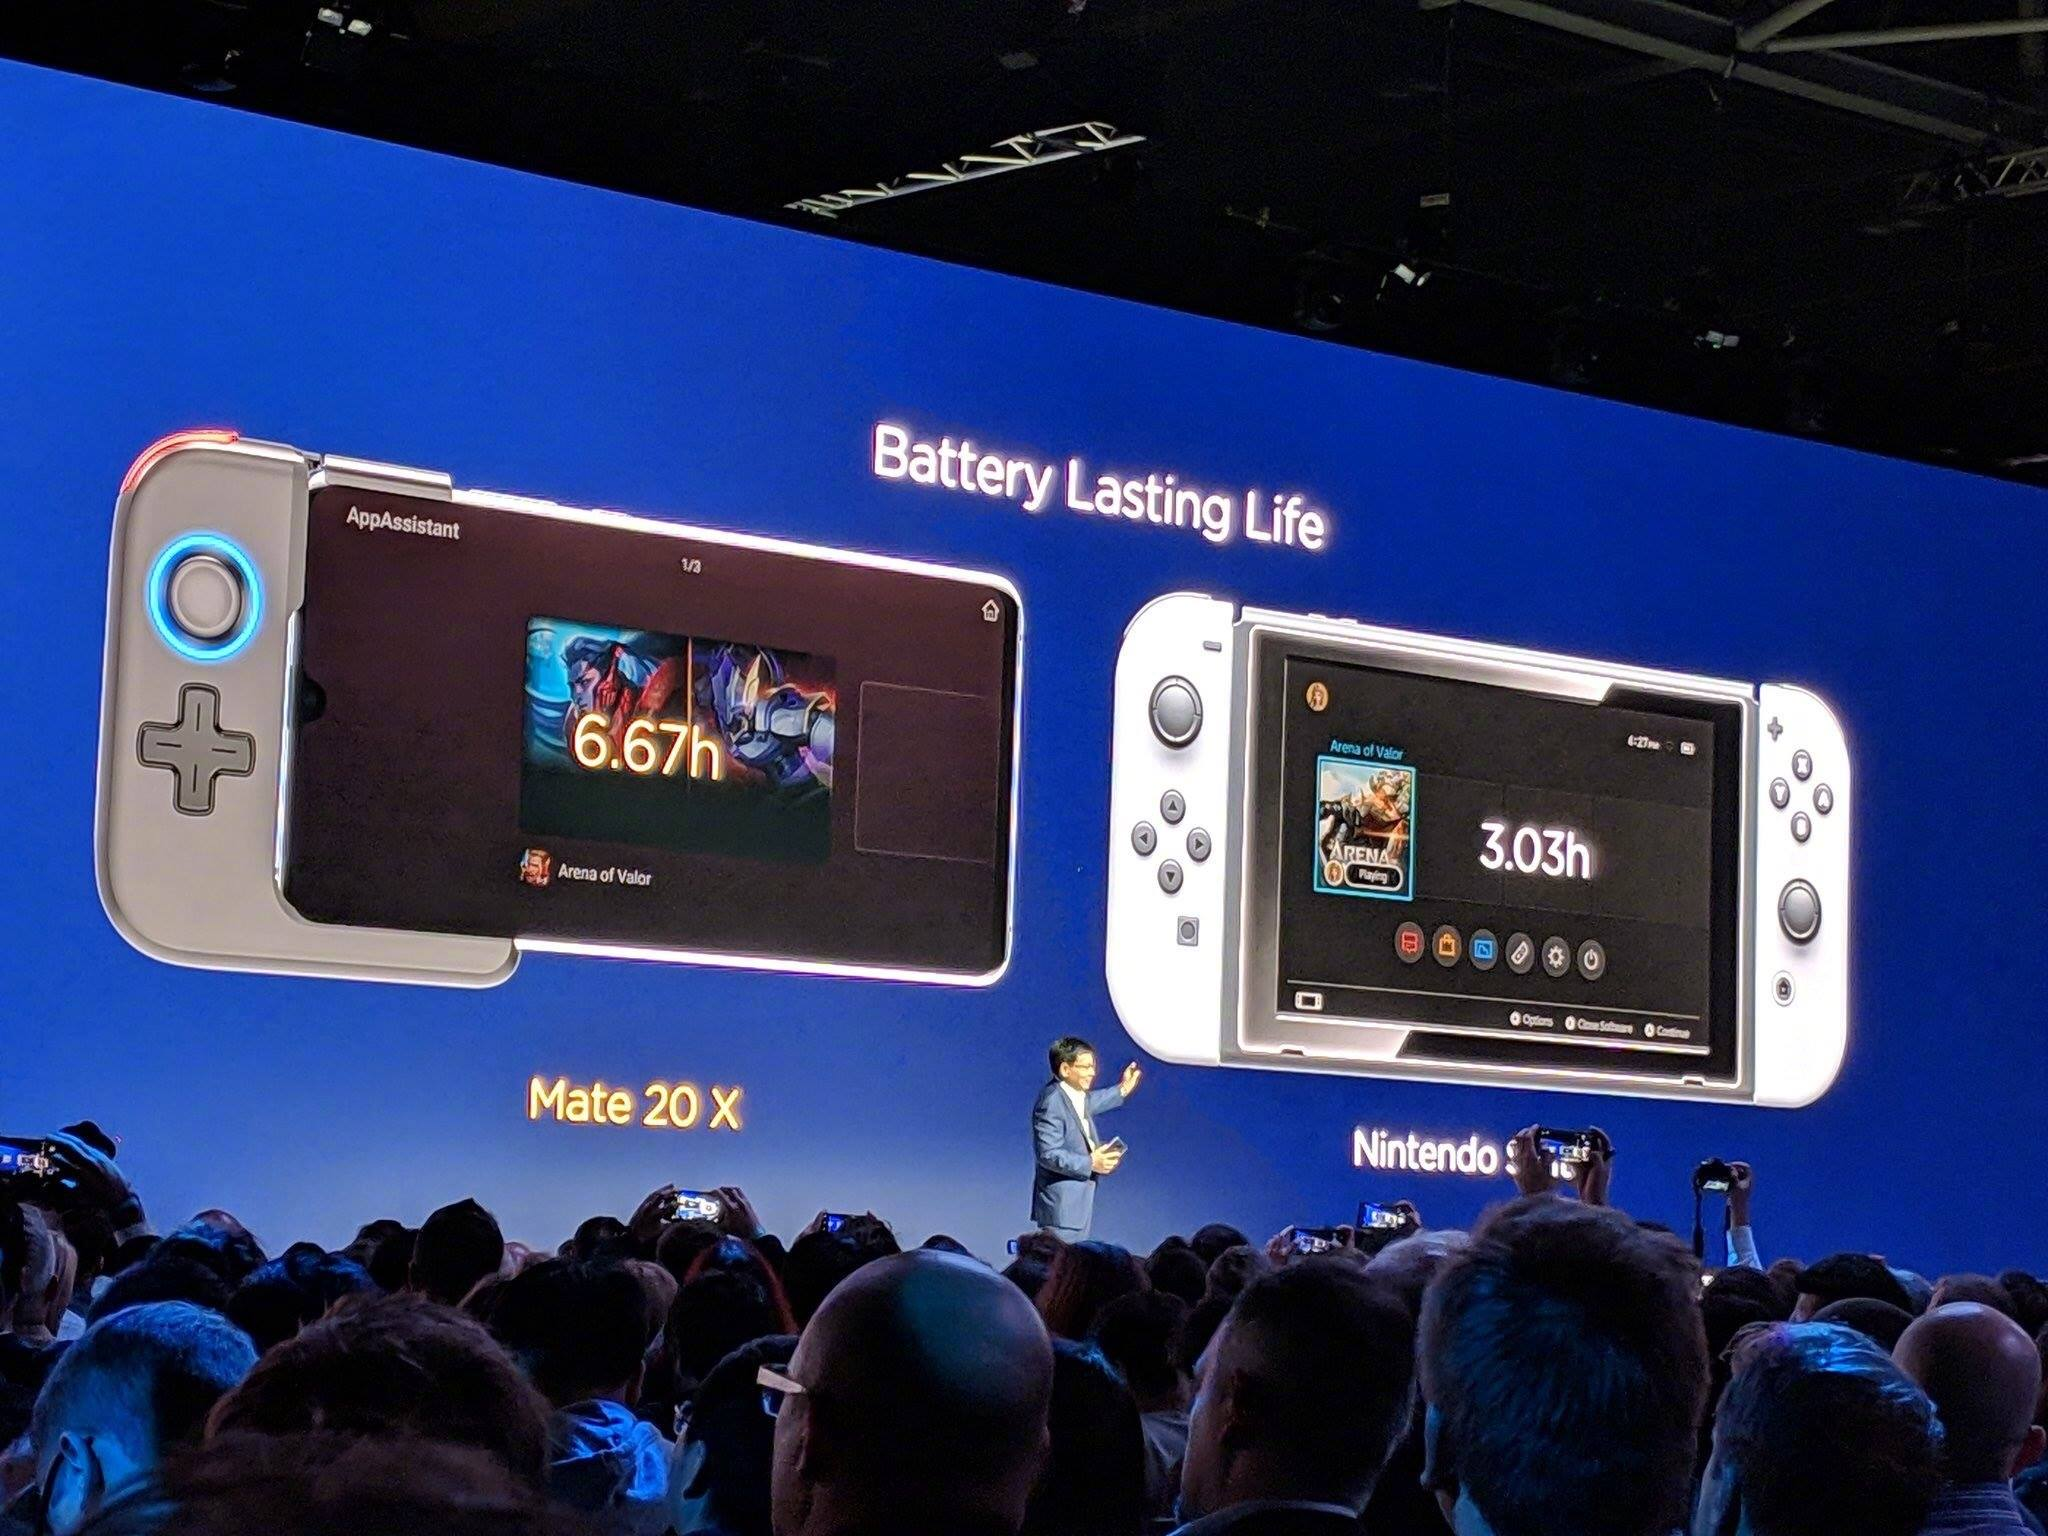 Huawei Our Smartphone Is Superior Over Nintendo Switch